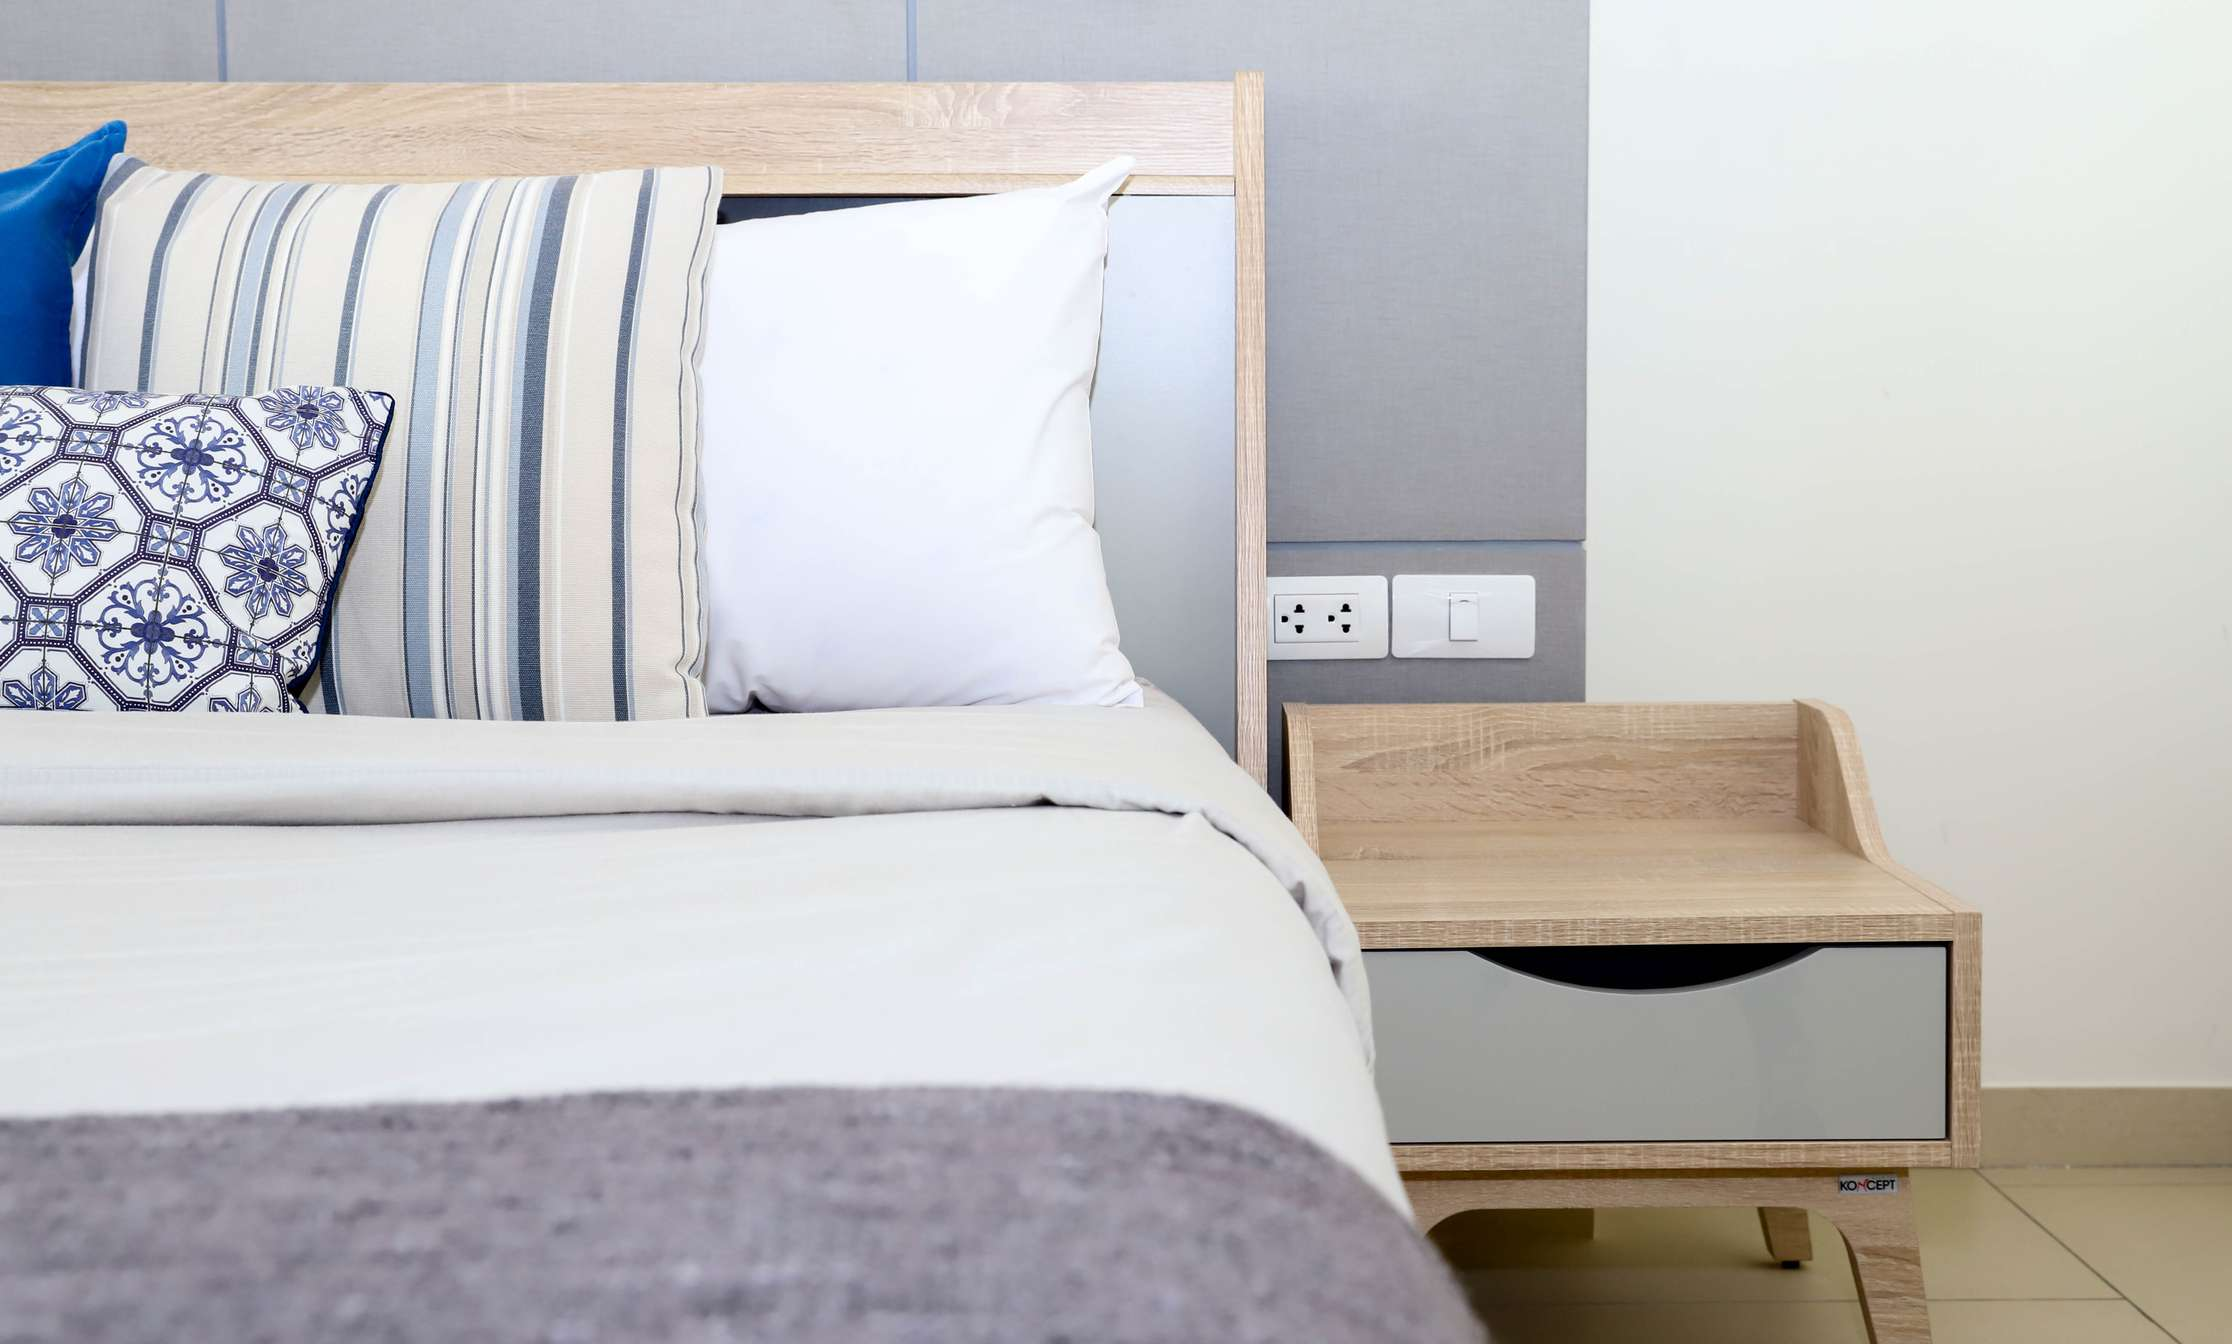 A closeup of a bedroom and nightstand